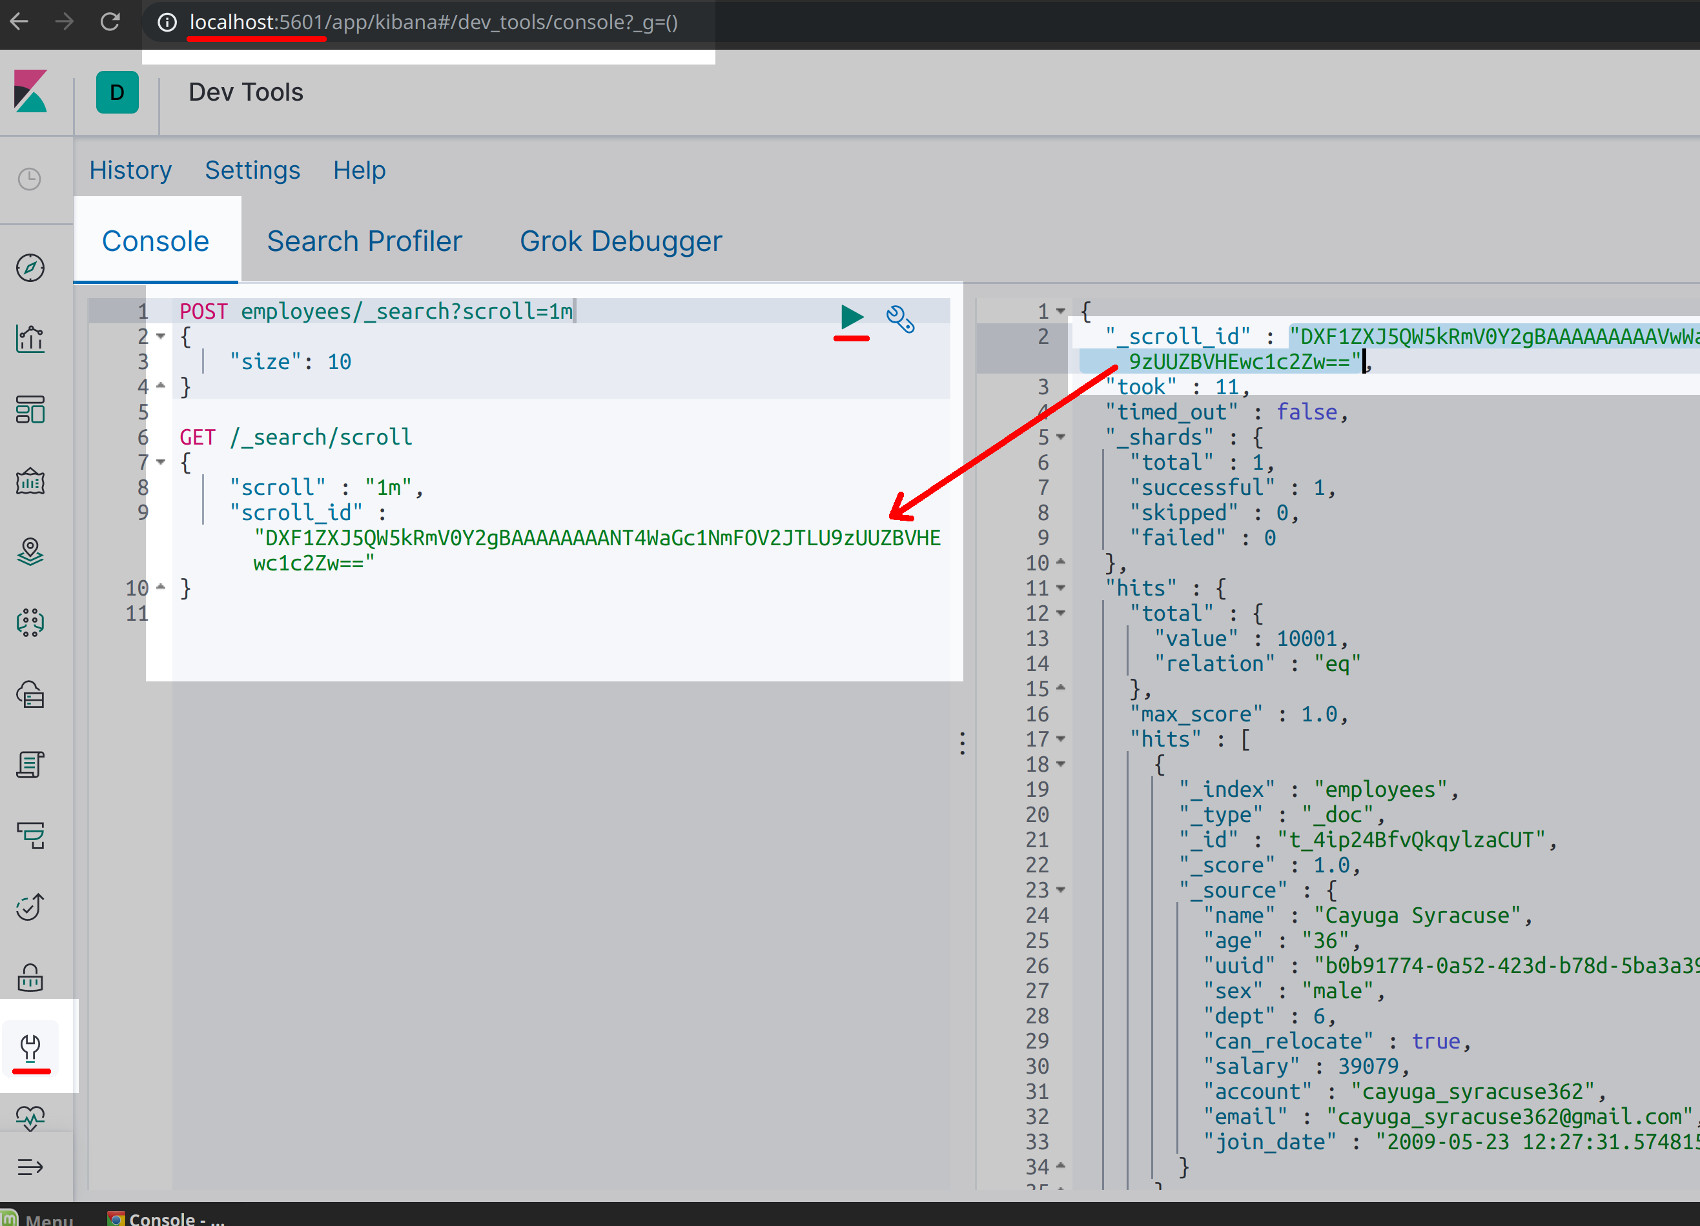 Screenshot of Kibana Console UI creating a scroll ID using a POST HTTP request